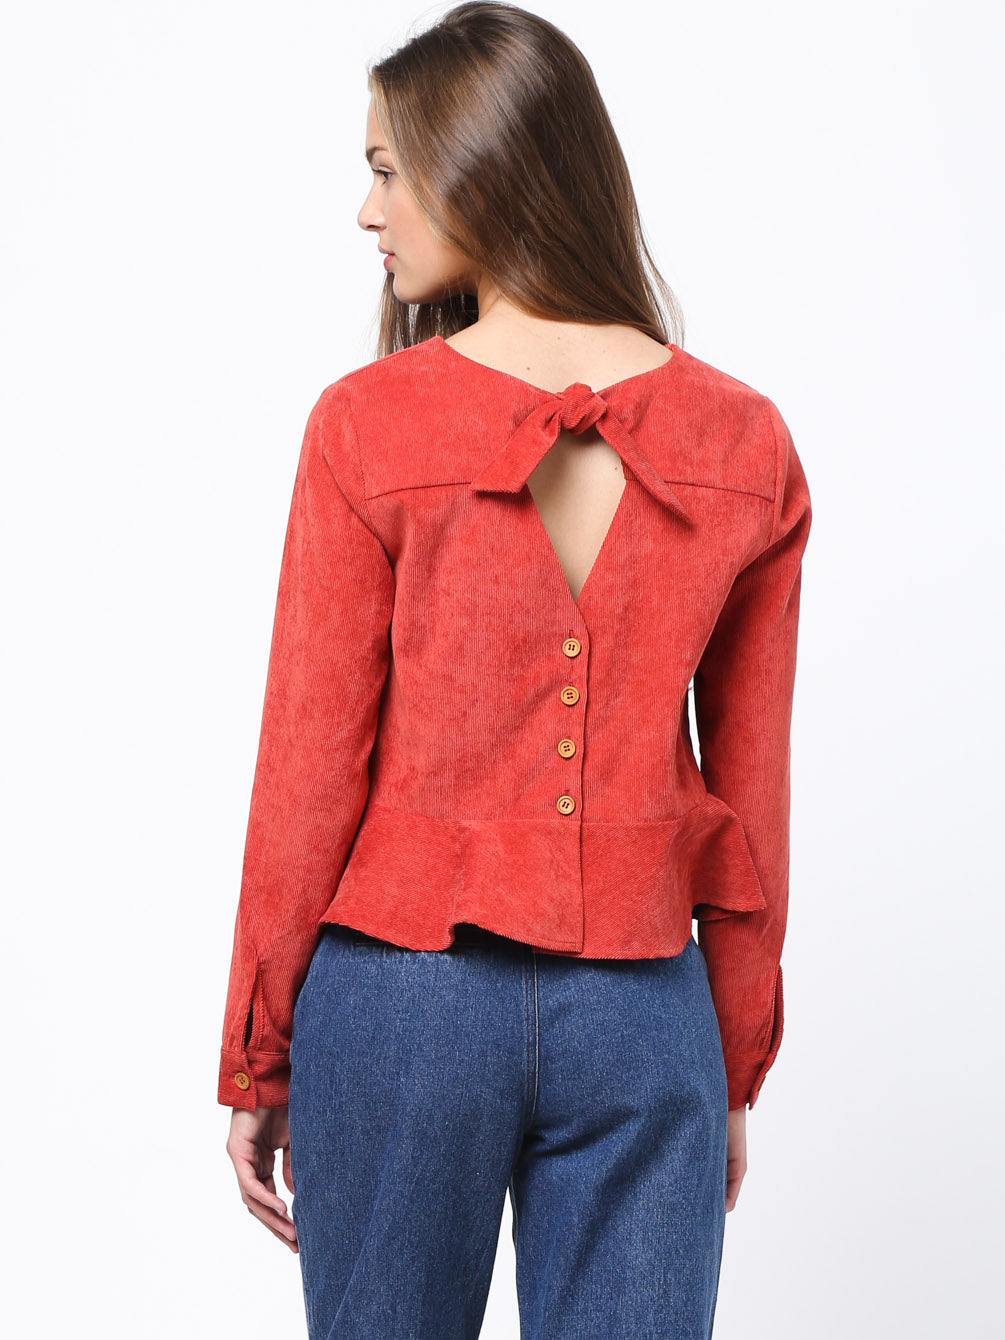 Back Neck Knot Detailed Peplum Top